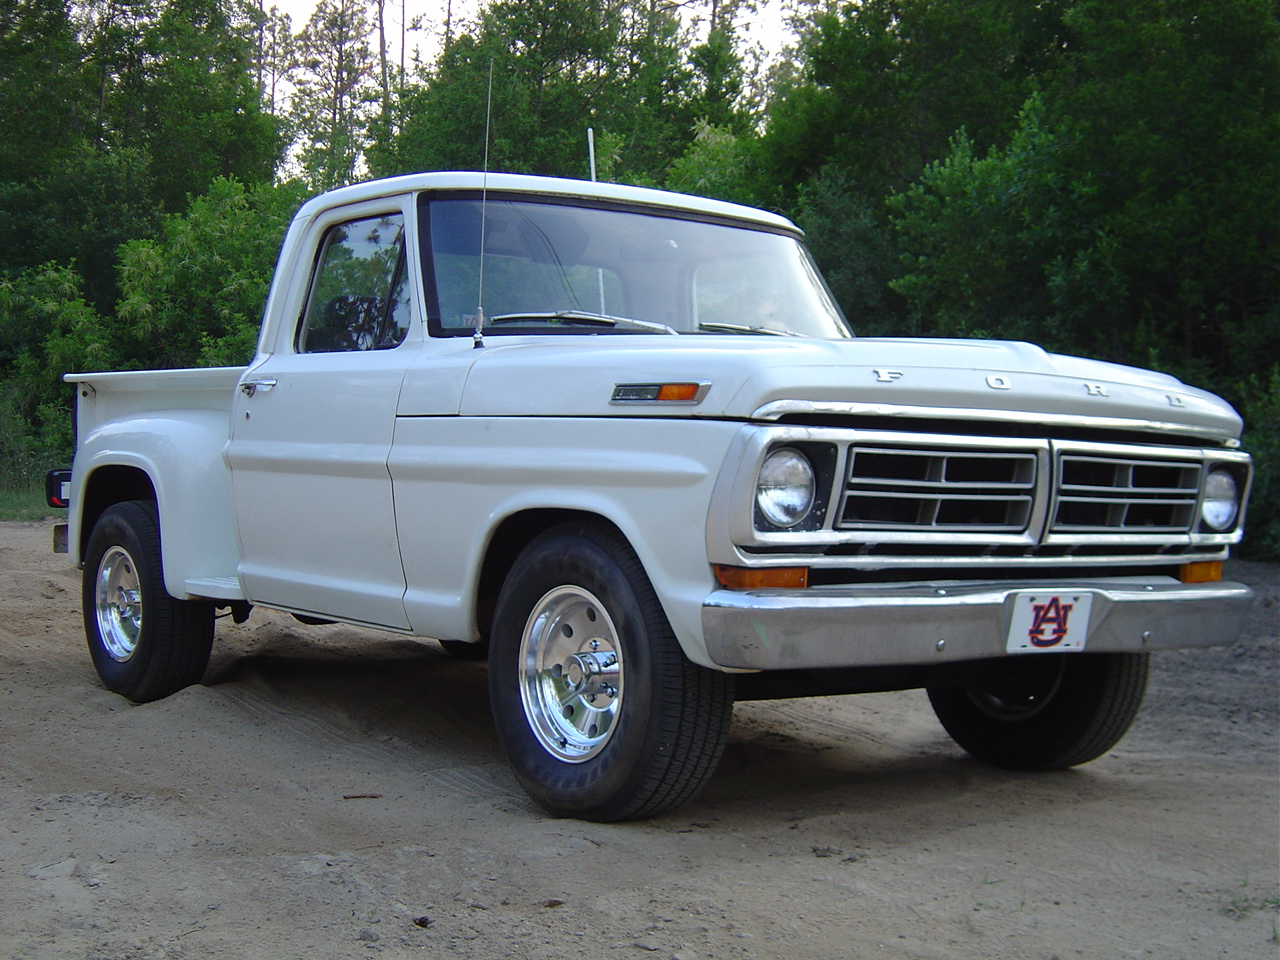 Curbside Classic 1968 Ford Pickup A Truck Youd Be Proud To Own 1970 Ranger Camper Special F100 Flareside And 71 F250 These Are Great Old Trucks That Complex Enough Do Just About What Ever You Want But Simple